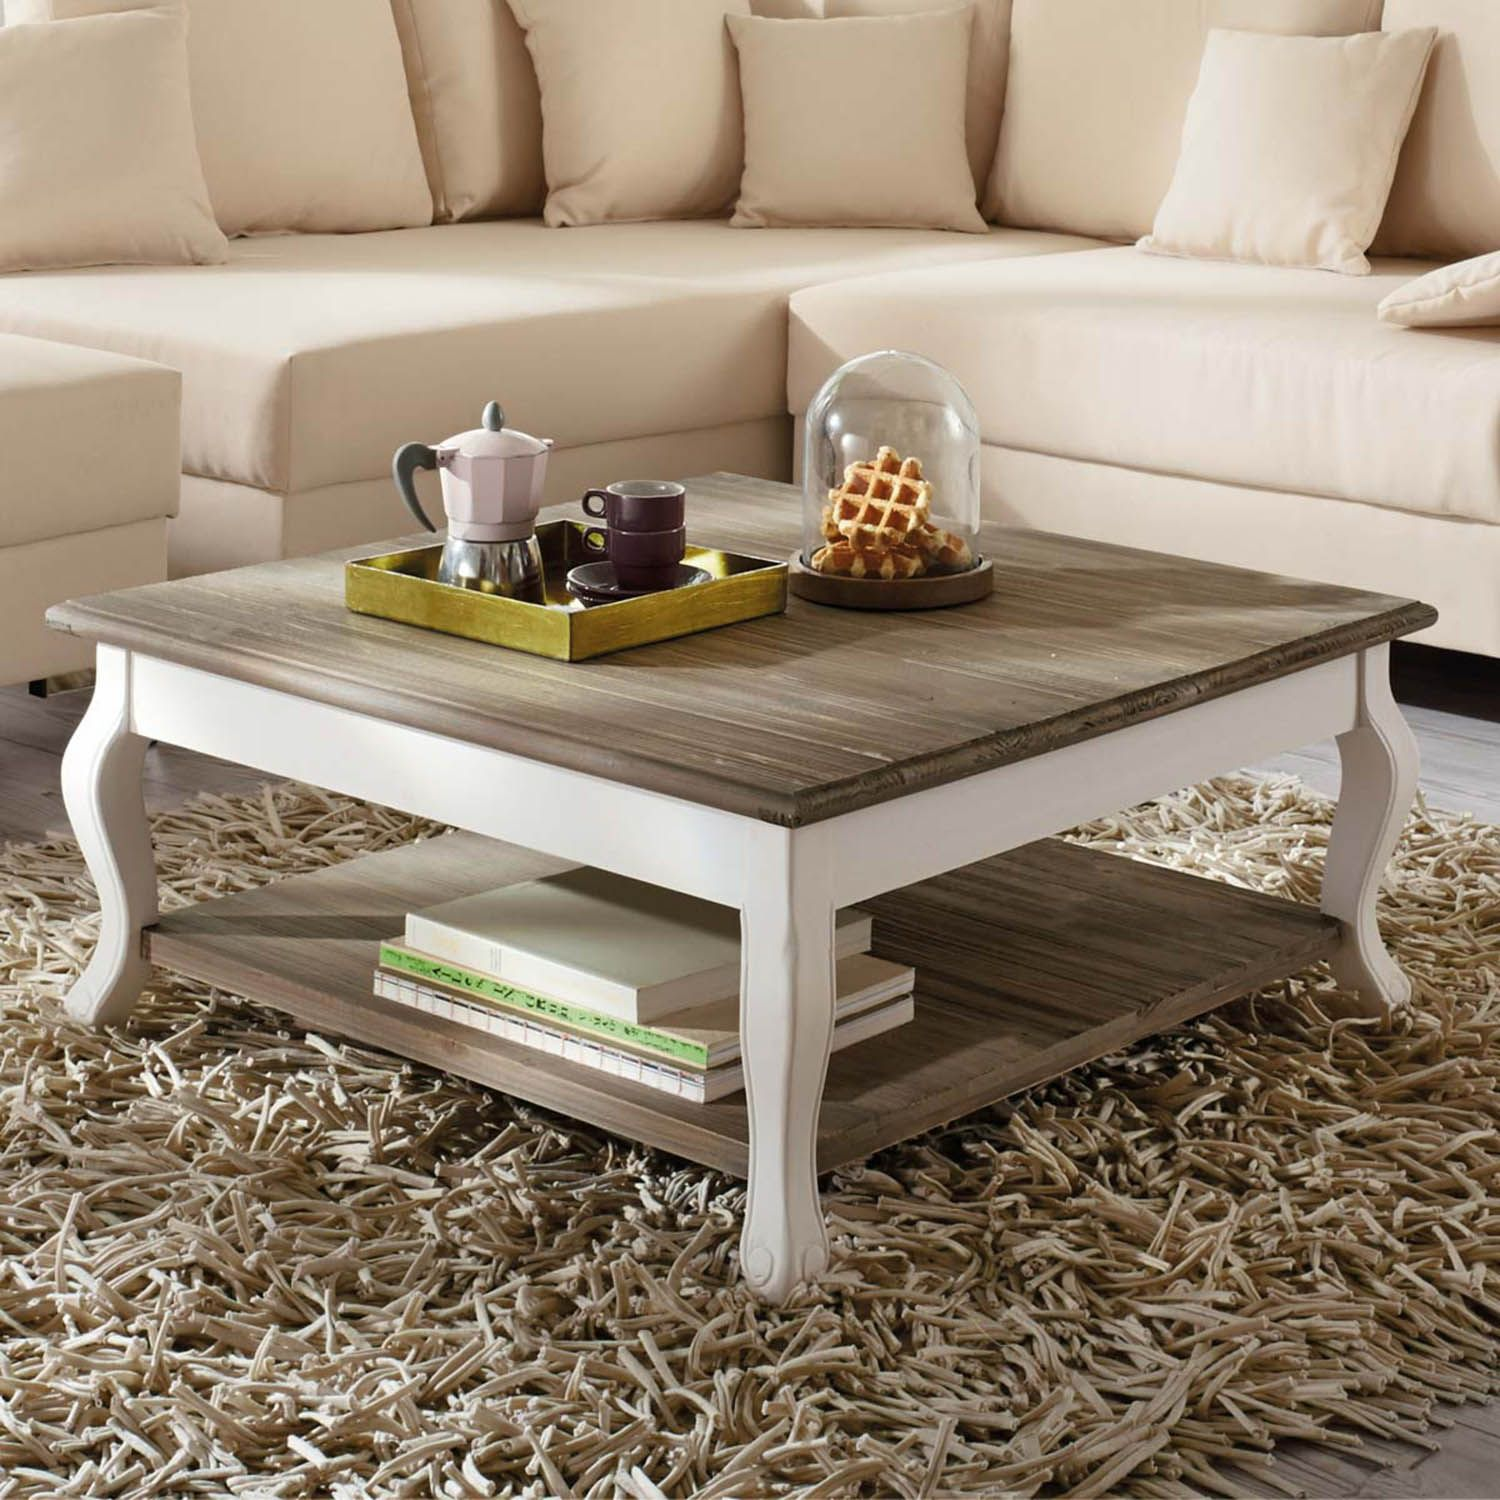 33 Really Nice Coffee Table Designs With Photos